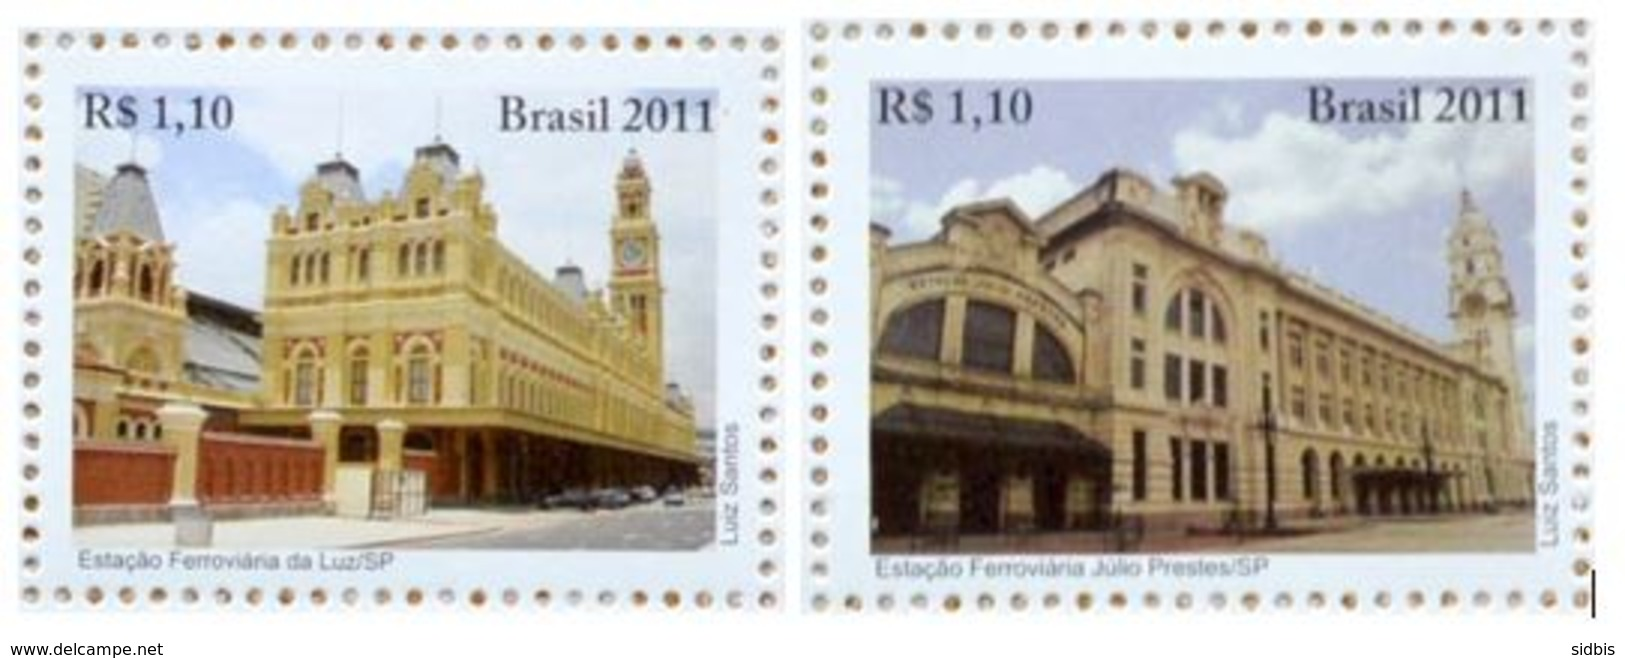 BRAZIL 2011 RAILWAY STAIONS - Unused Stamps